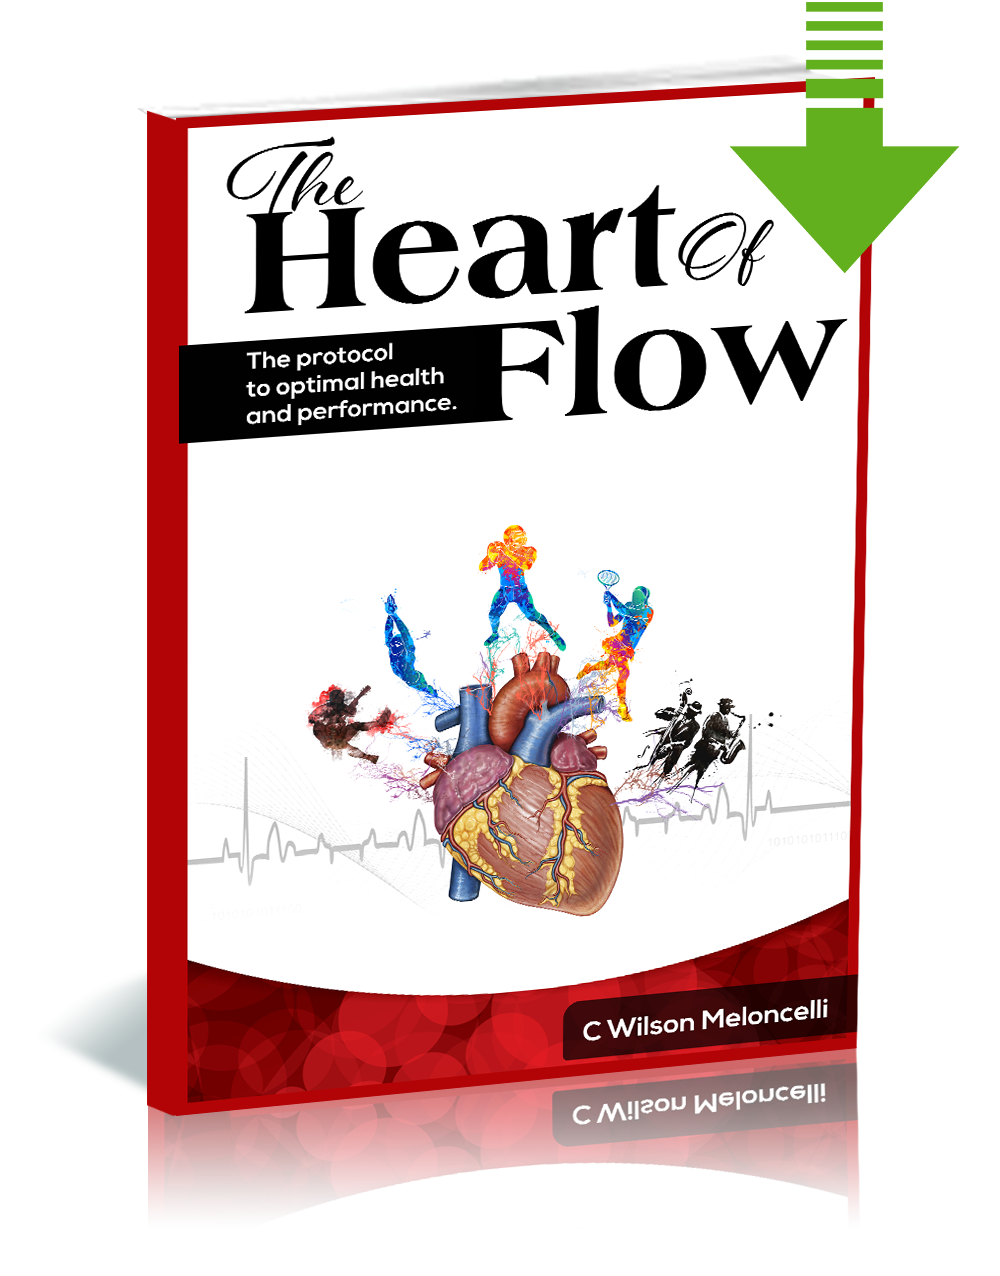 The Heart of Flow Manual